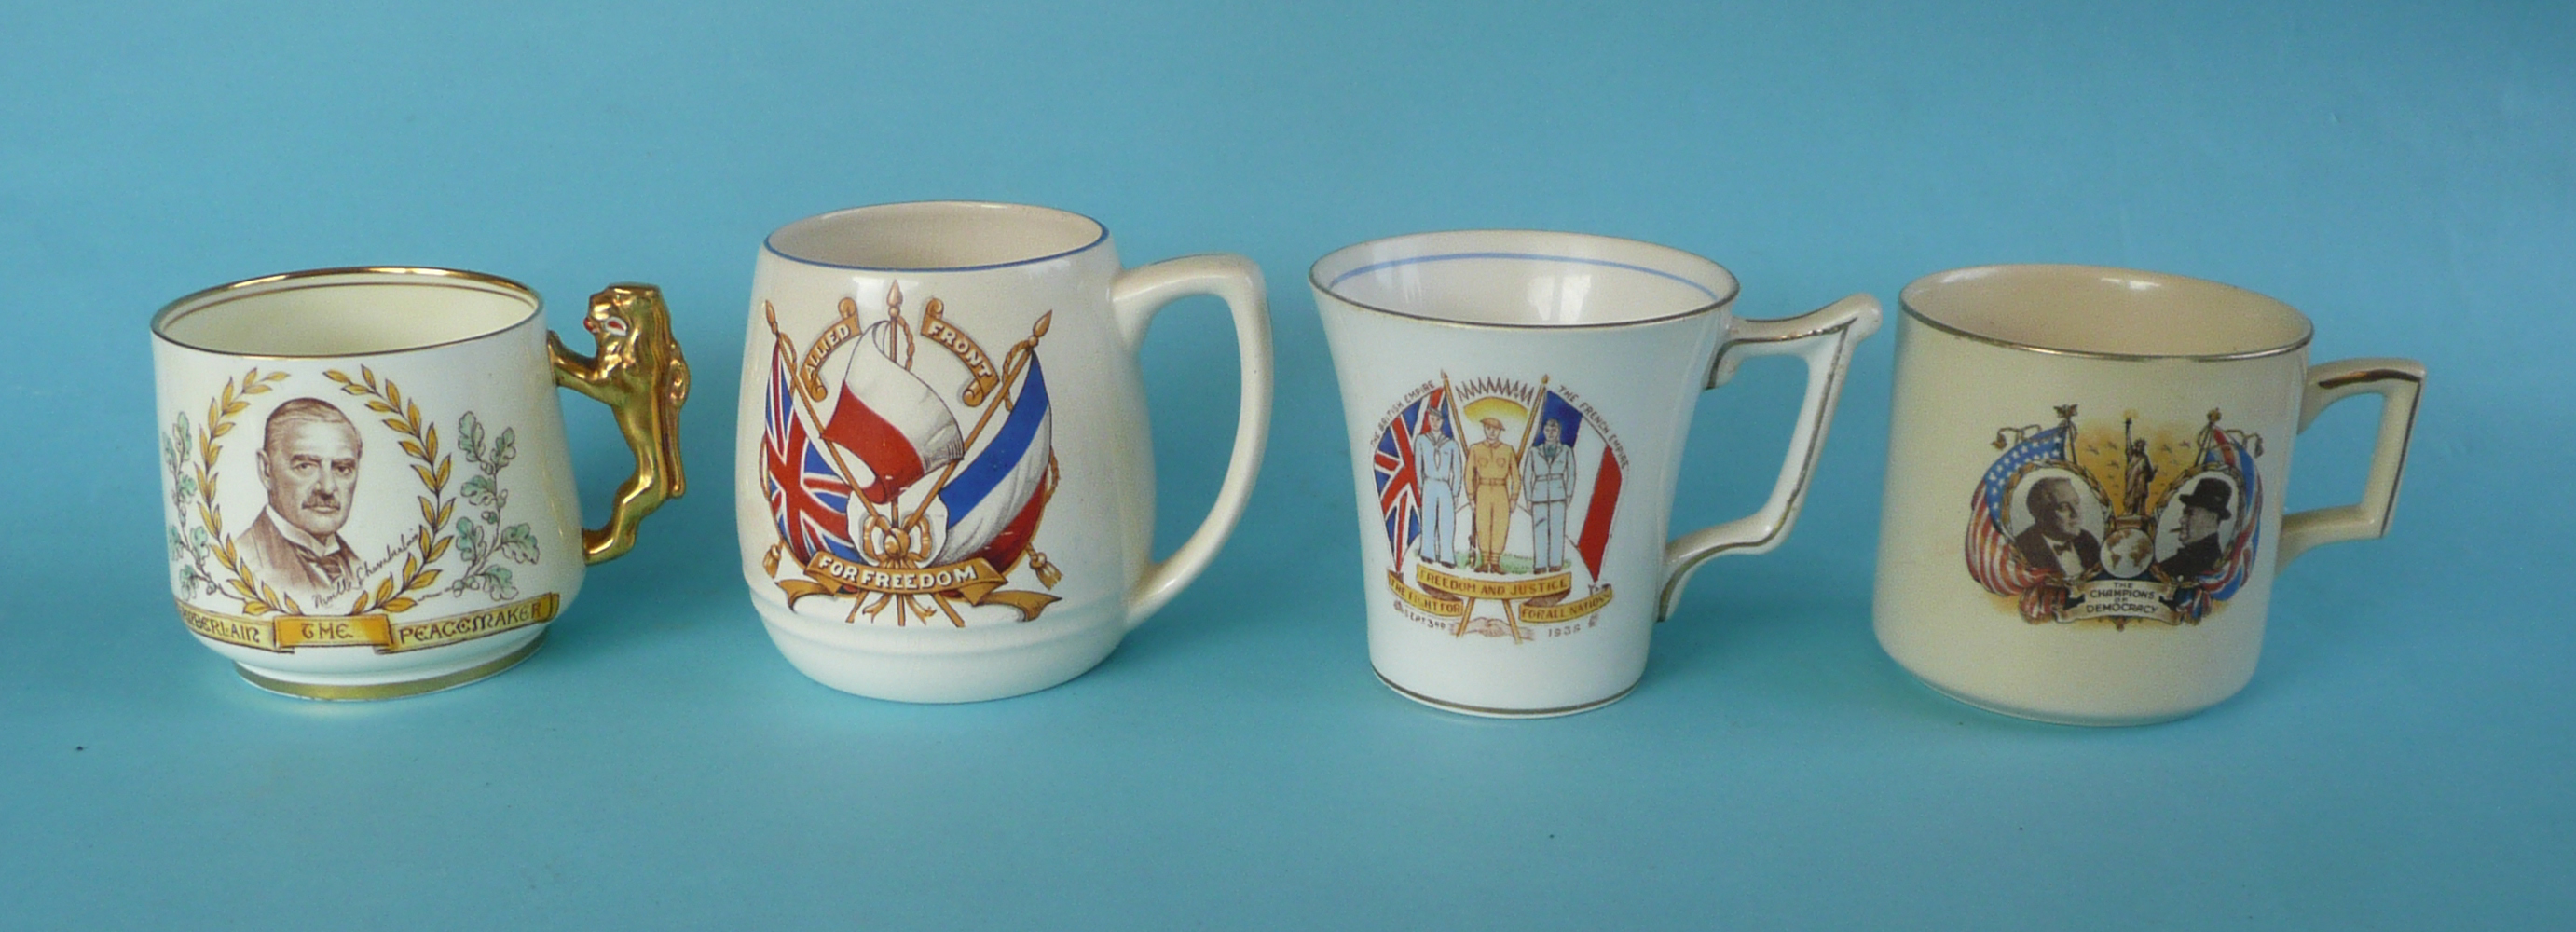 Lot 60 - World War II: a Paragon mug for the Munich Peace Conference, two mugs dated September 3rd 1939 and